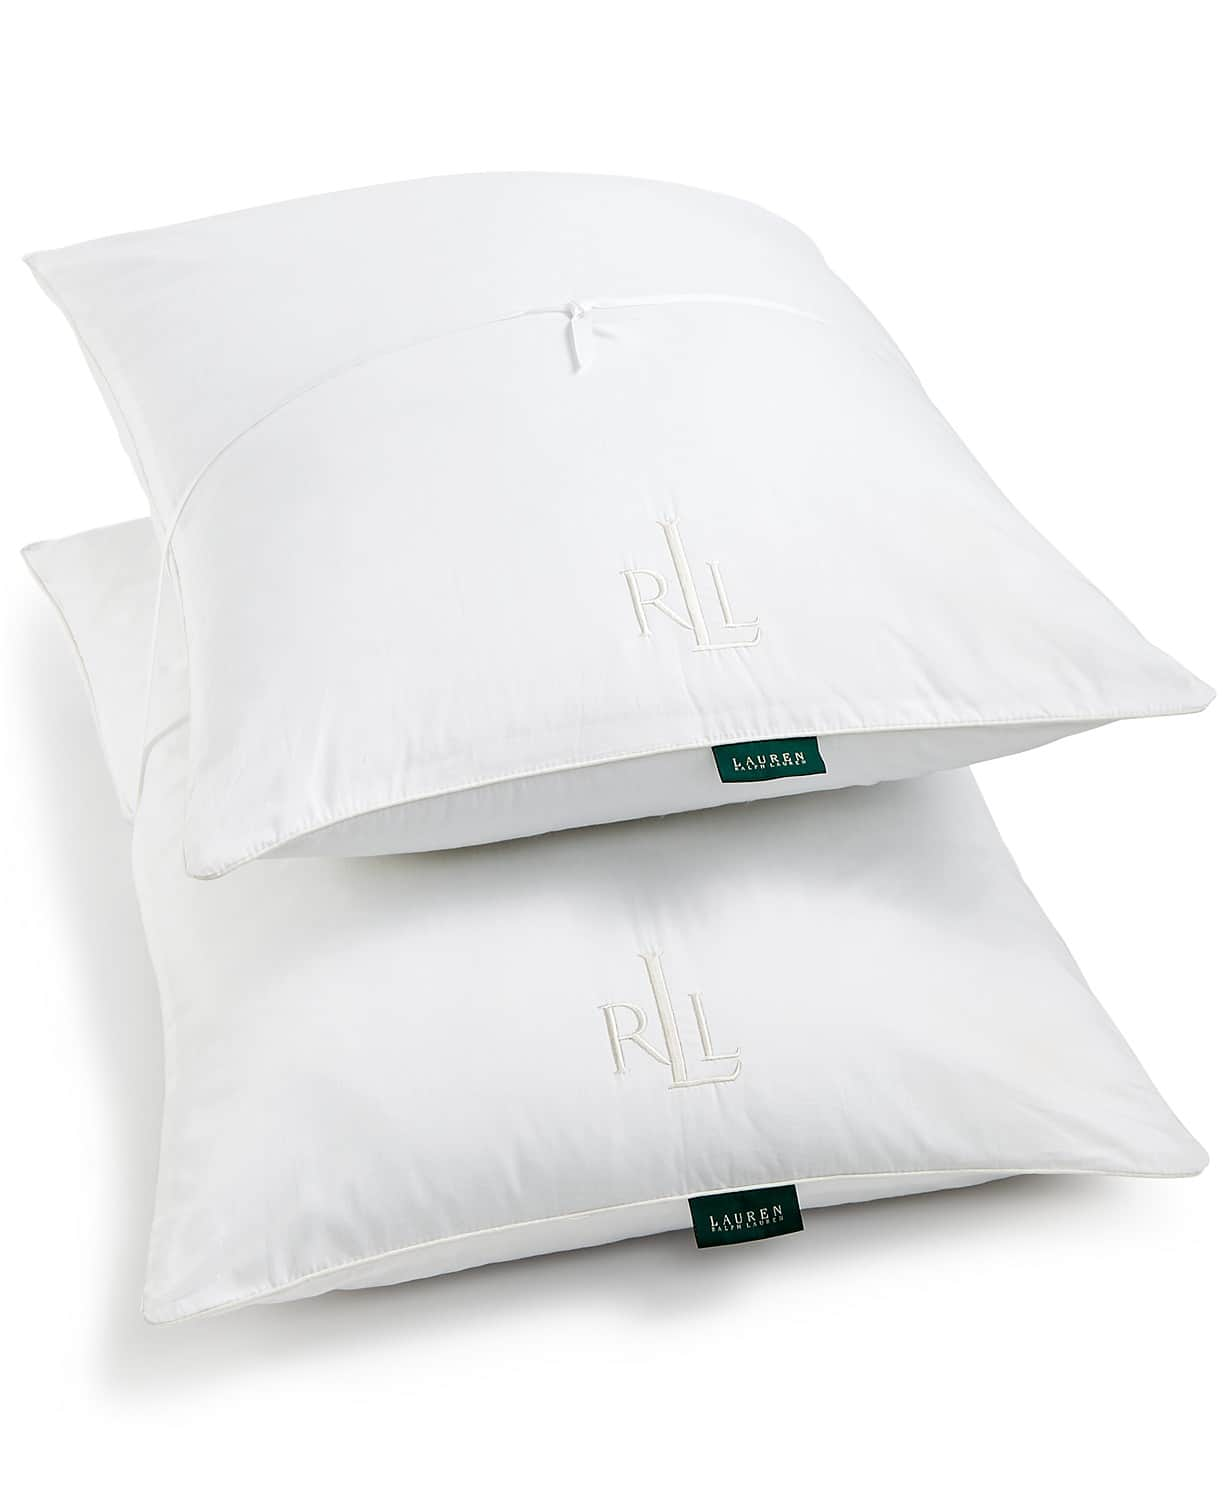 2-Pack Lauren Ralph Lauren Liteloft Down Alternative Jumbo Pillows $9.58 - Macy's